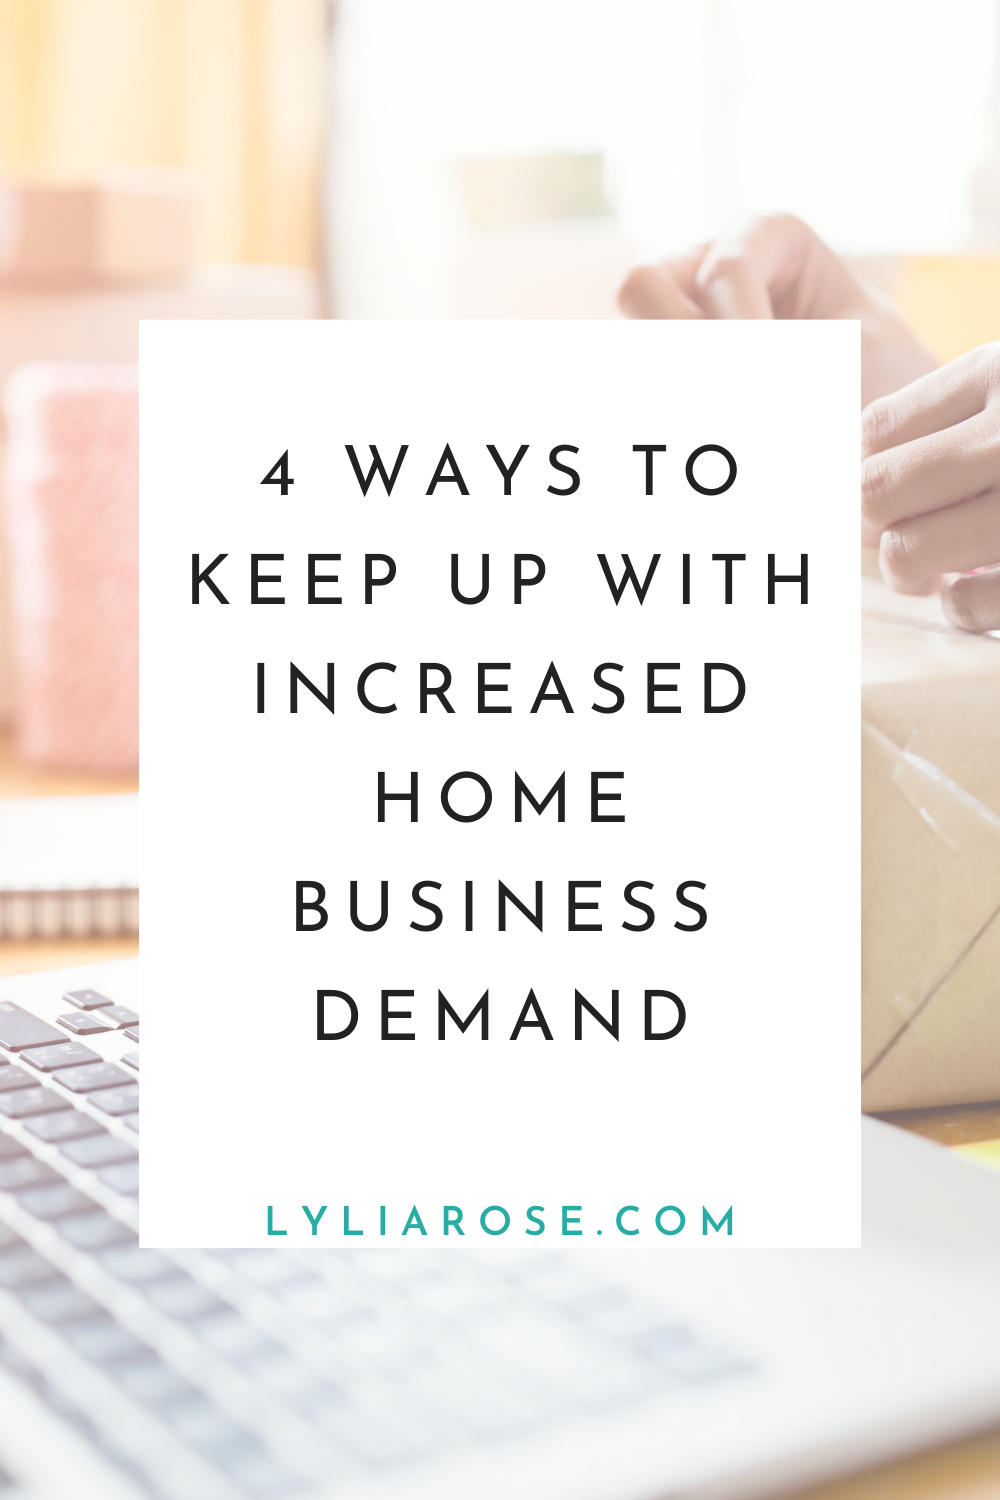 4 ways to keep up with increased home business demand